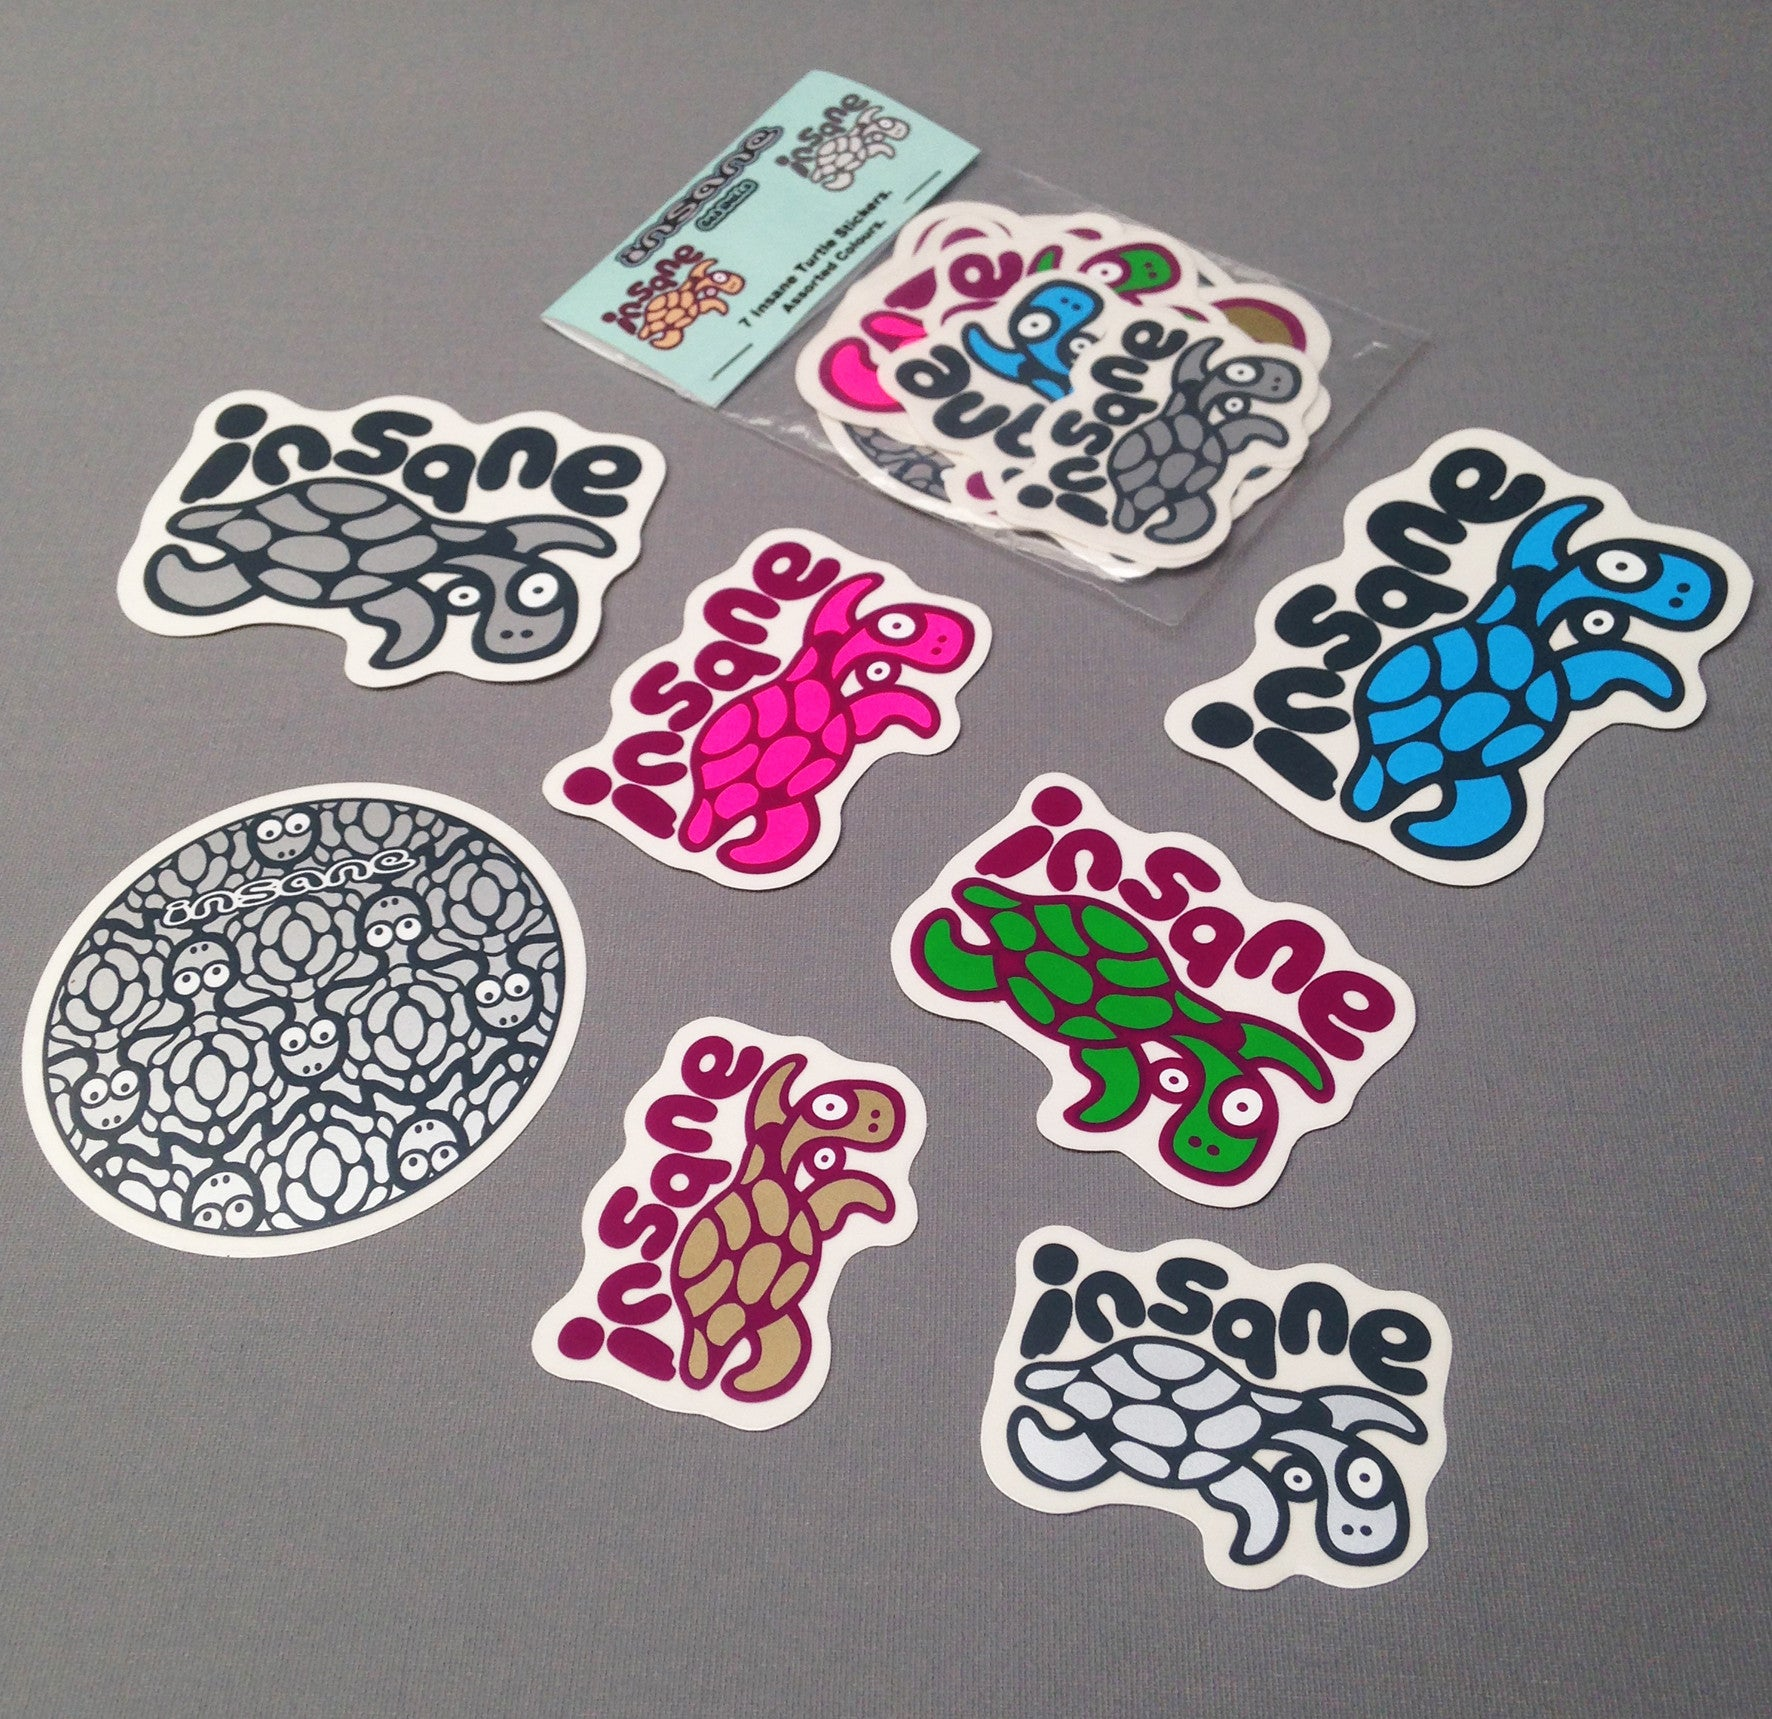 Insane Turtle sticker pack.